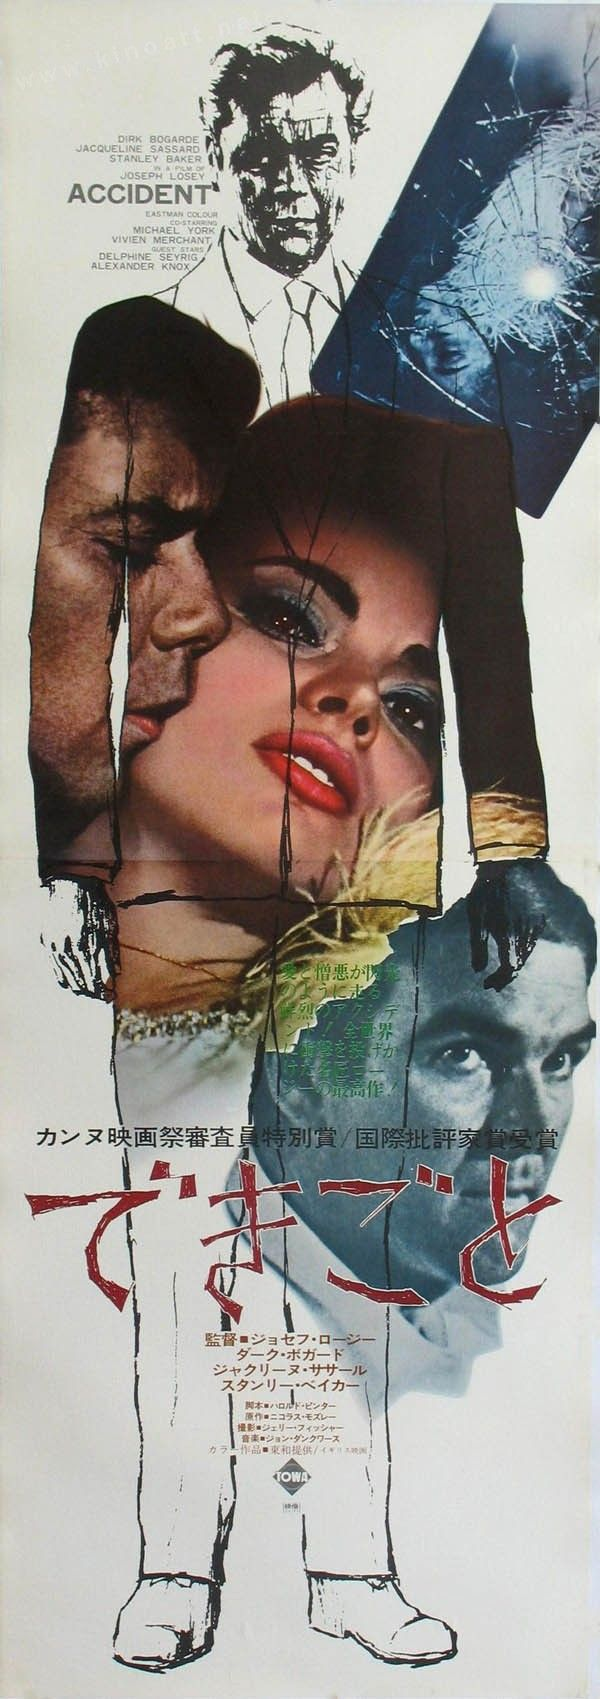 Accident (Joseph Losey, 1967) Japanese 2 panel design